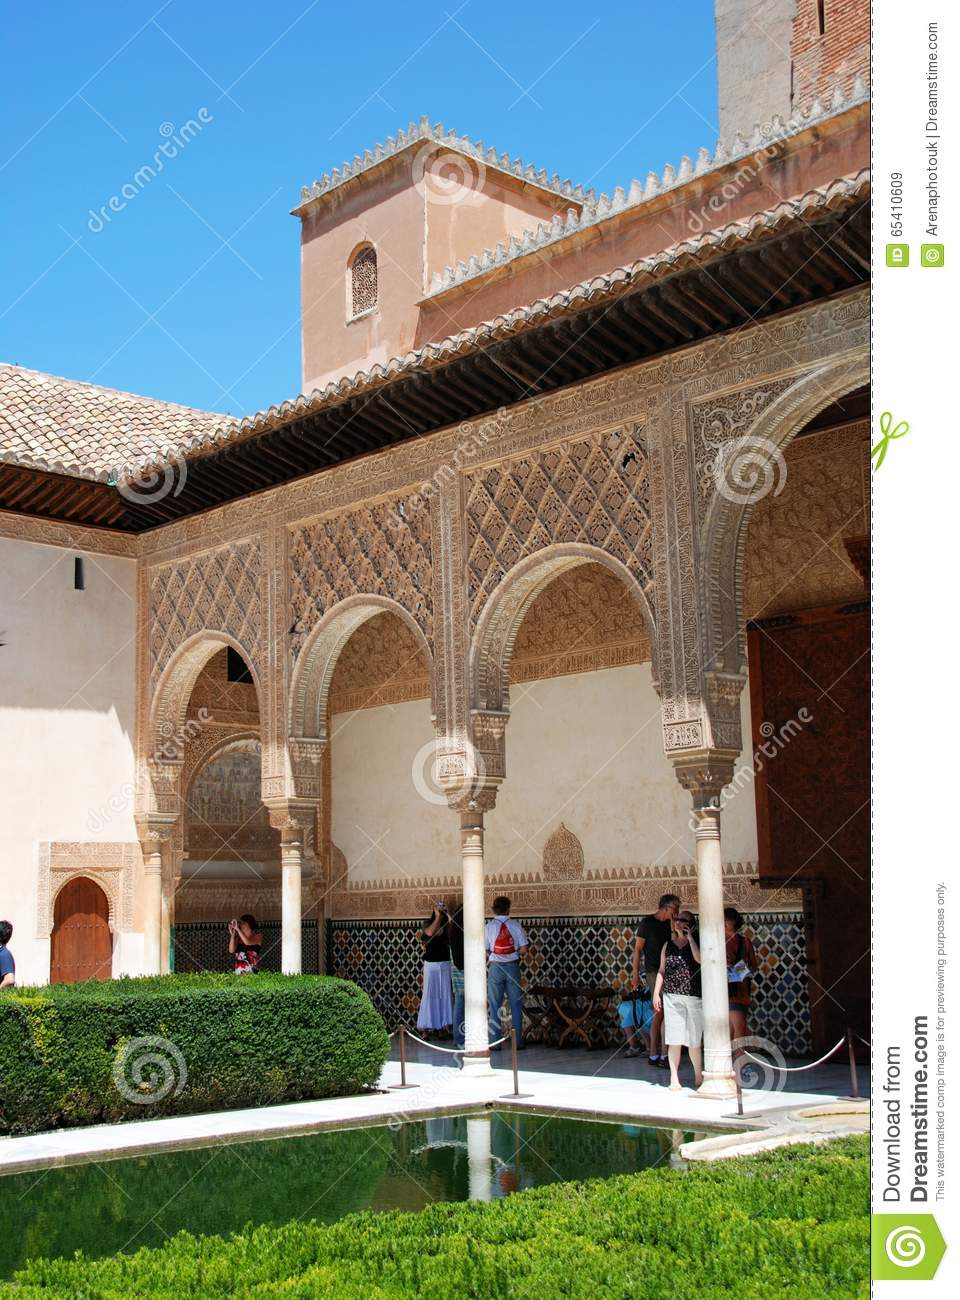 : Court Of The Myrtles (Patio De Los Arrayanes) In Day Time At A Editorial Im...